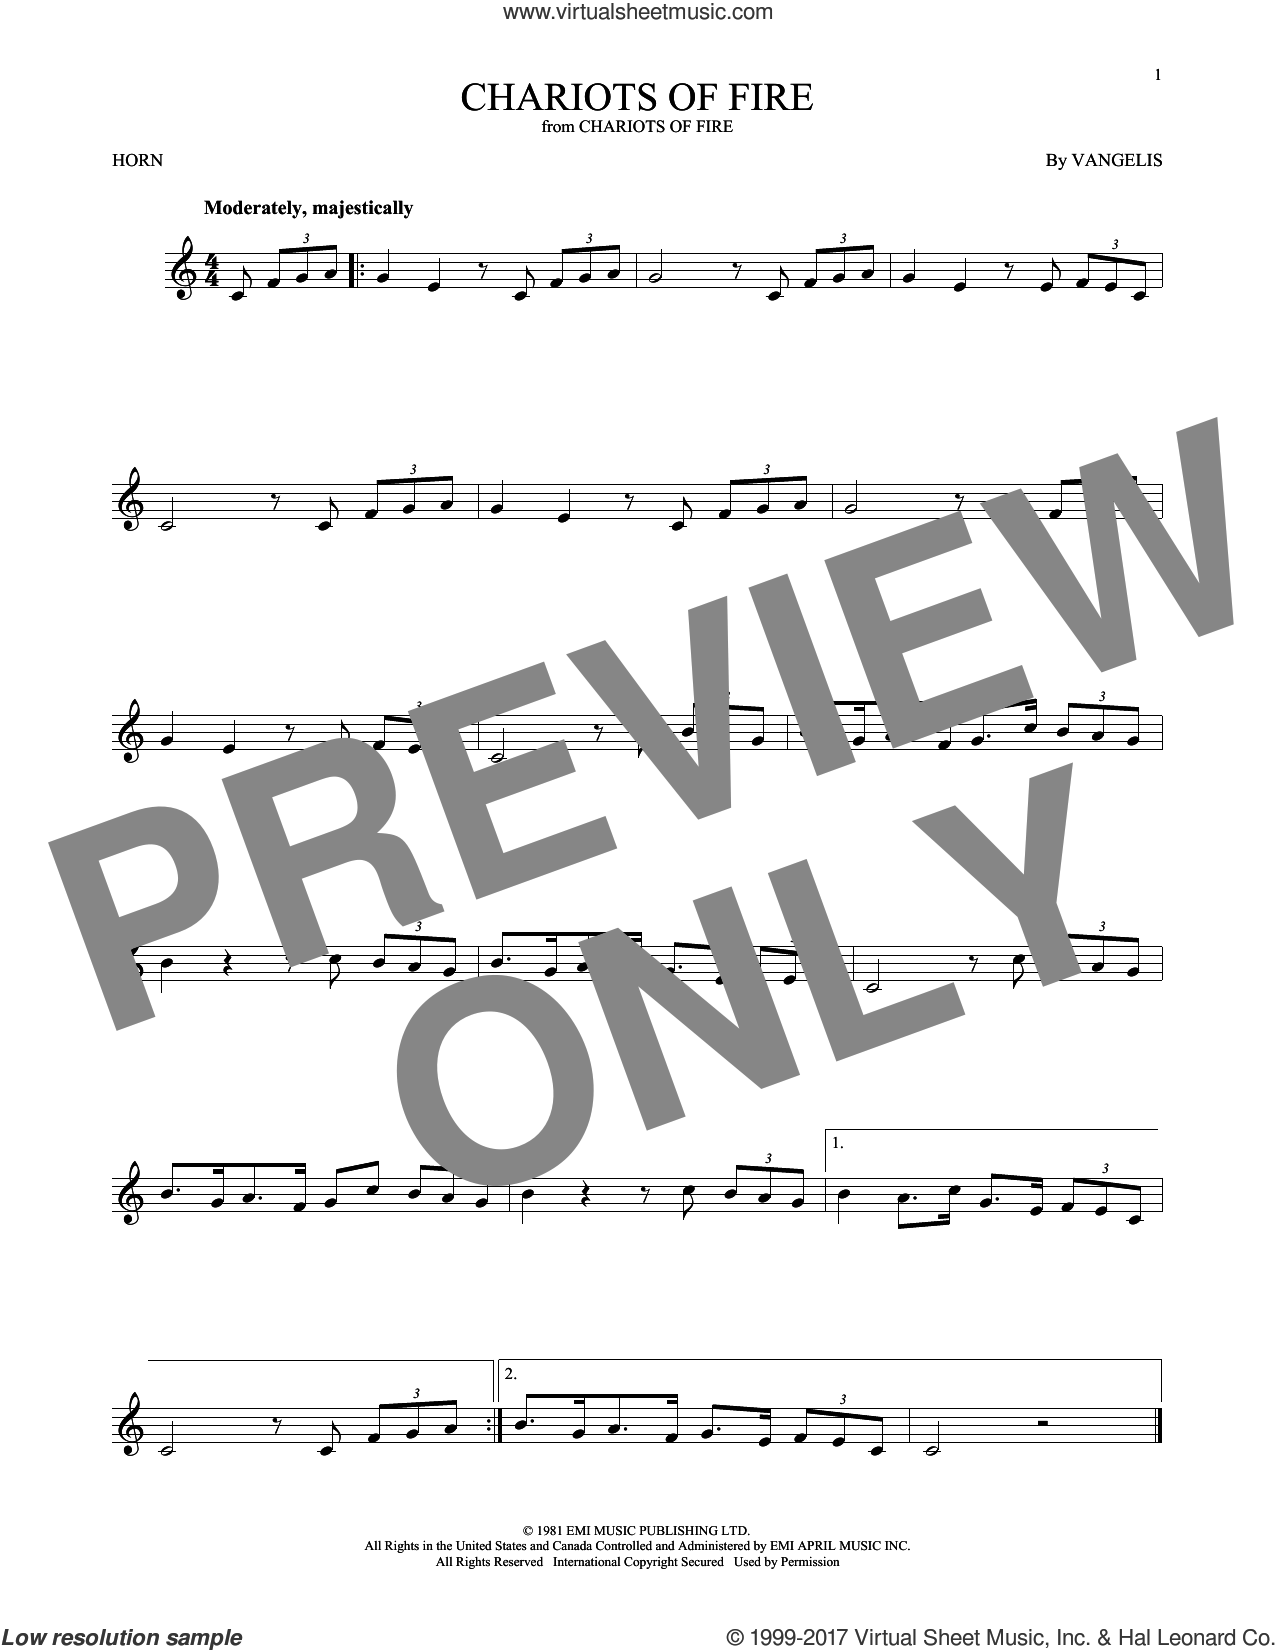 Chariots Of Fire sheet music for horn solo by Vangelis, intermediate skill level